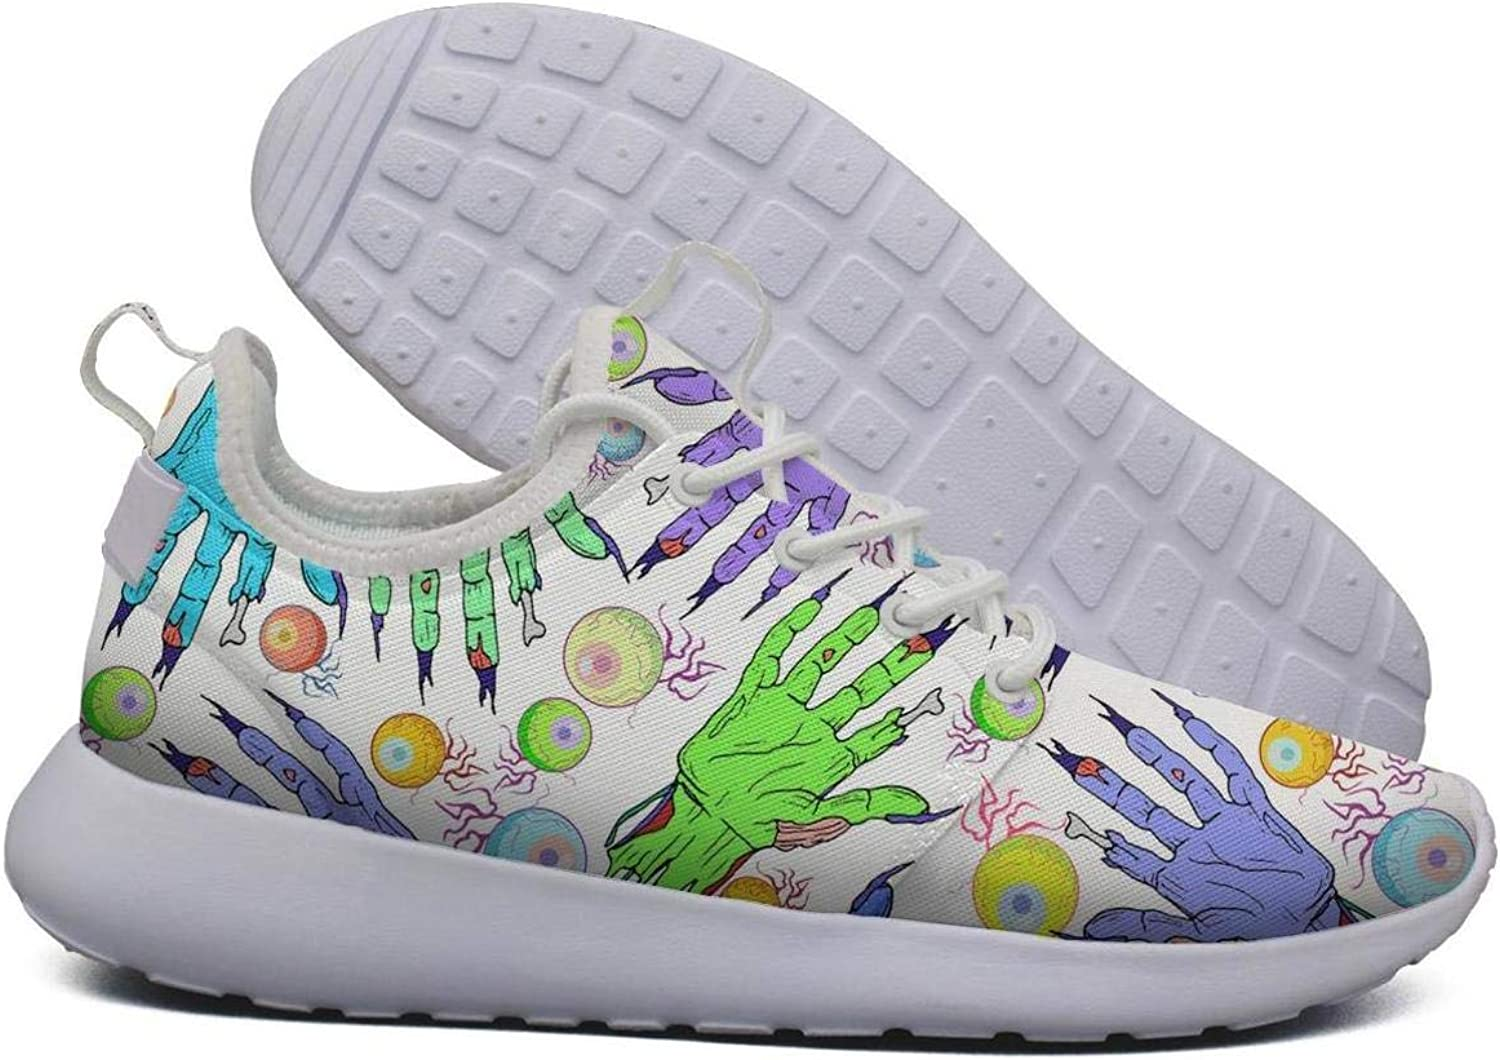 Hoohle Sports Womens colorful Zombie Hand Eye Flex Mesh Roshe 2 Lightweight Print Cross-Country Running shoes